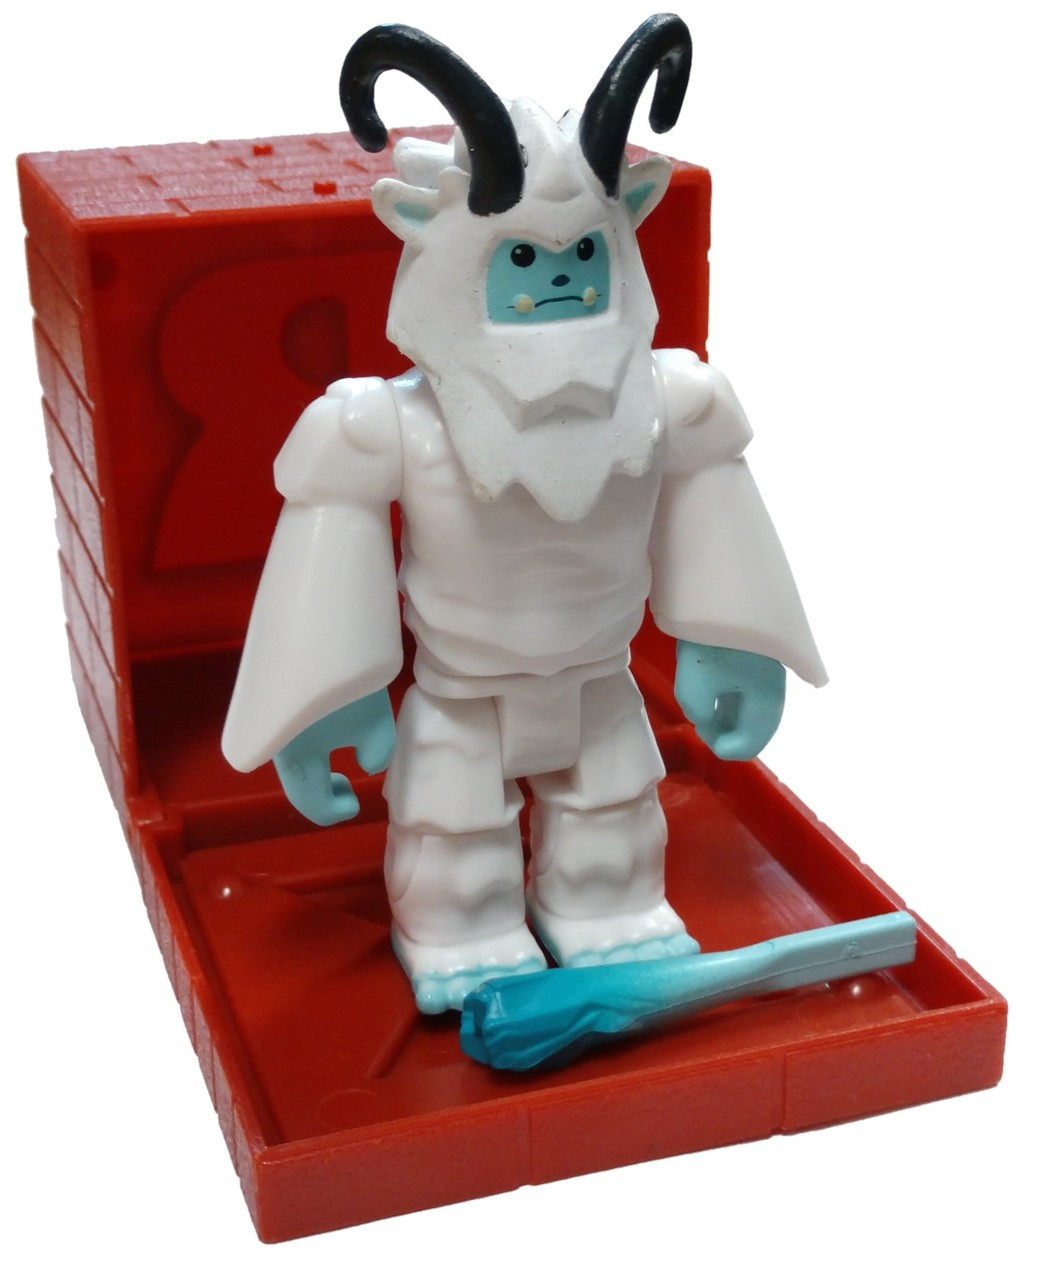 Roblox Series 4 - Roblox Red Series 4 Yeti Mini Figure With Red Cube And Online Code Loose